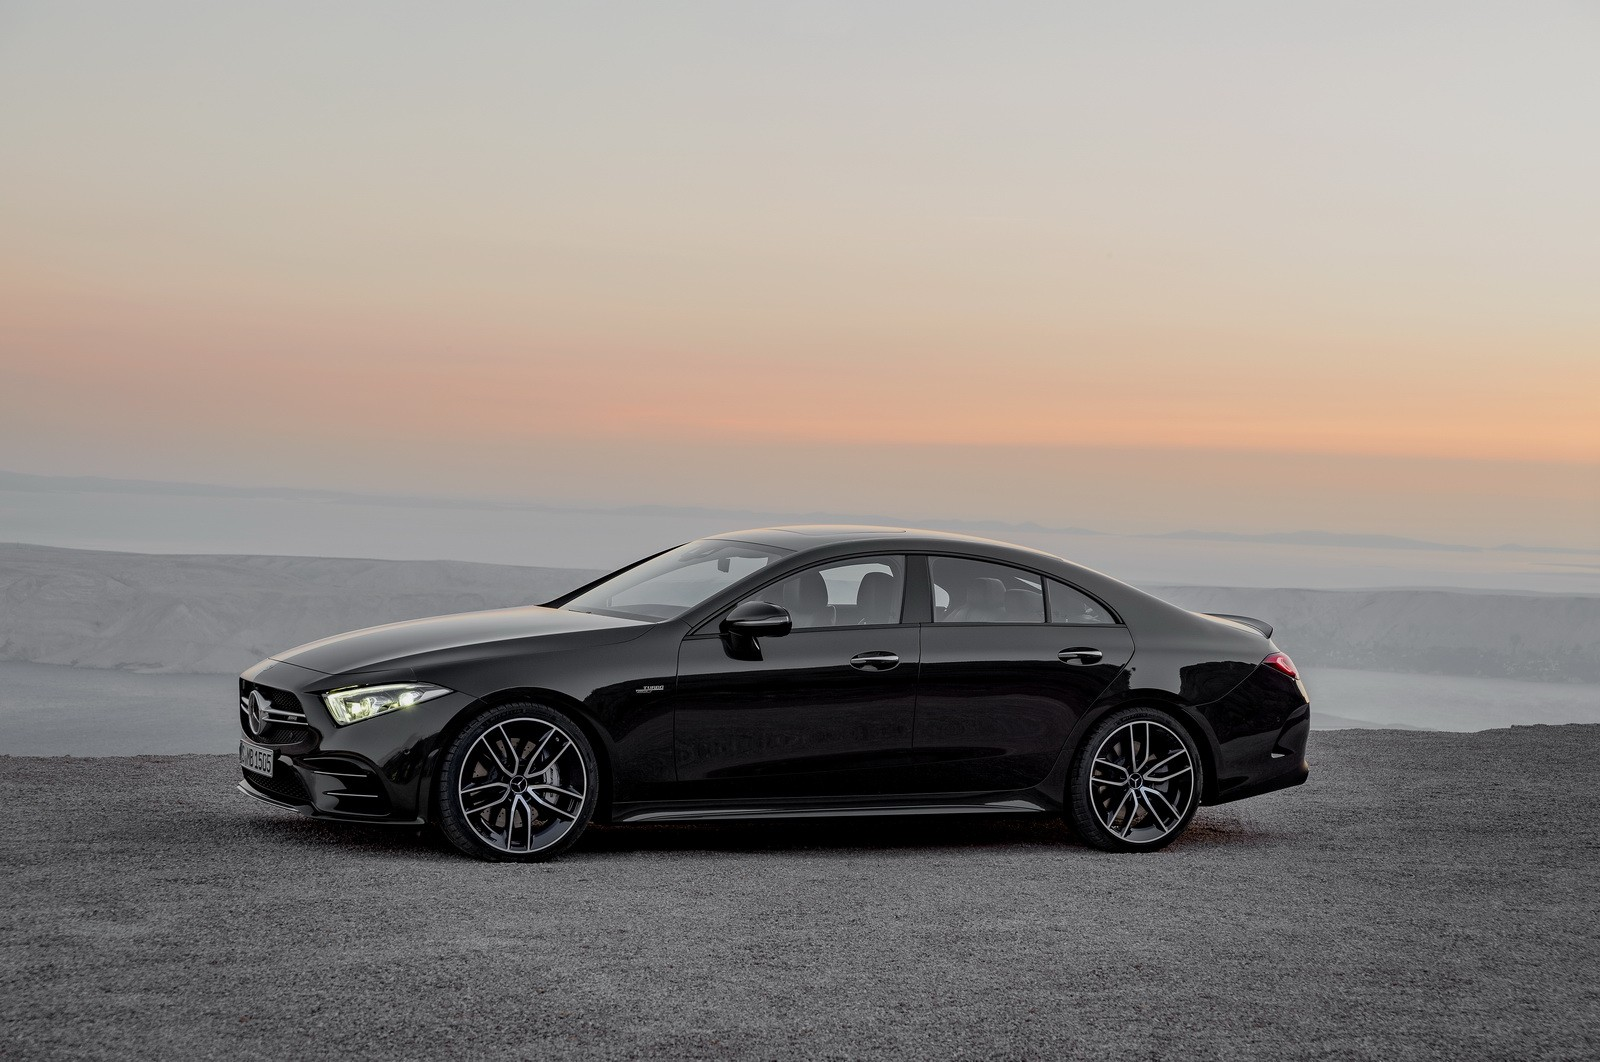 2019 Mercedes-AMG CLS 53 Officially Revealed - autoevolution